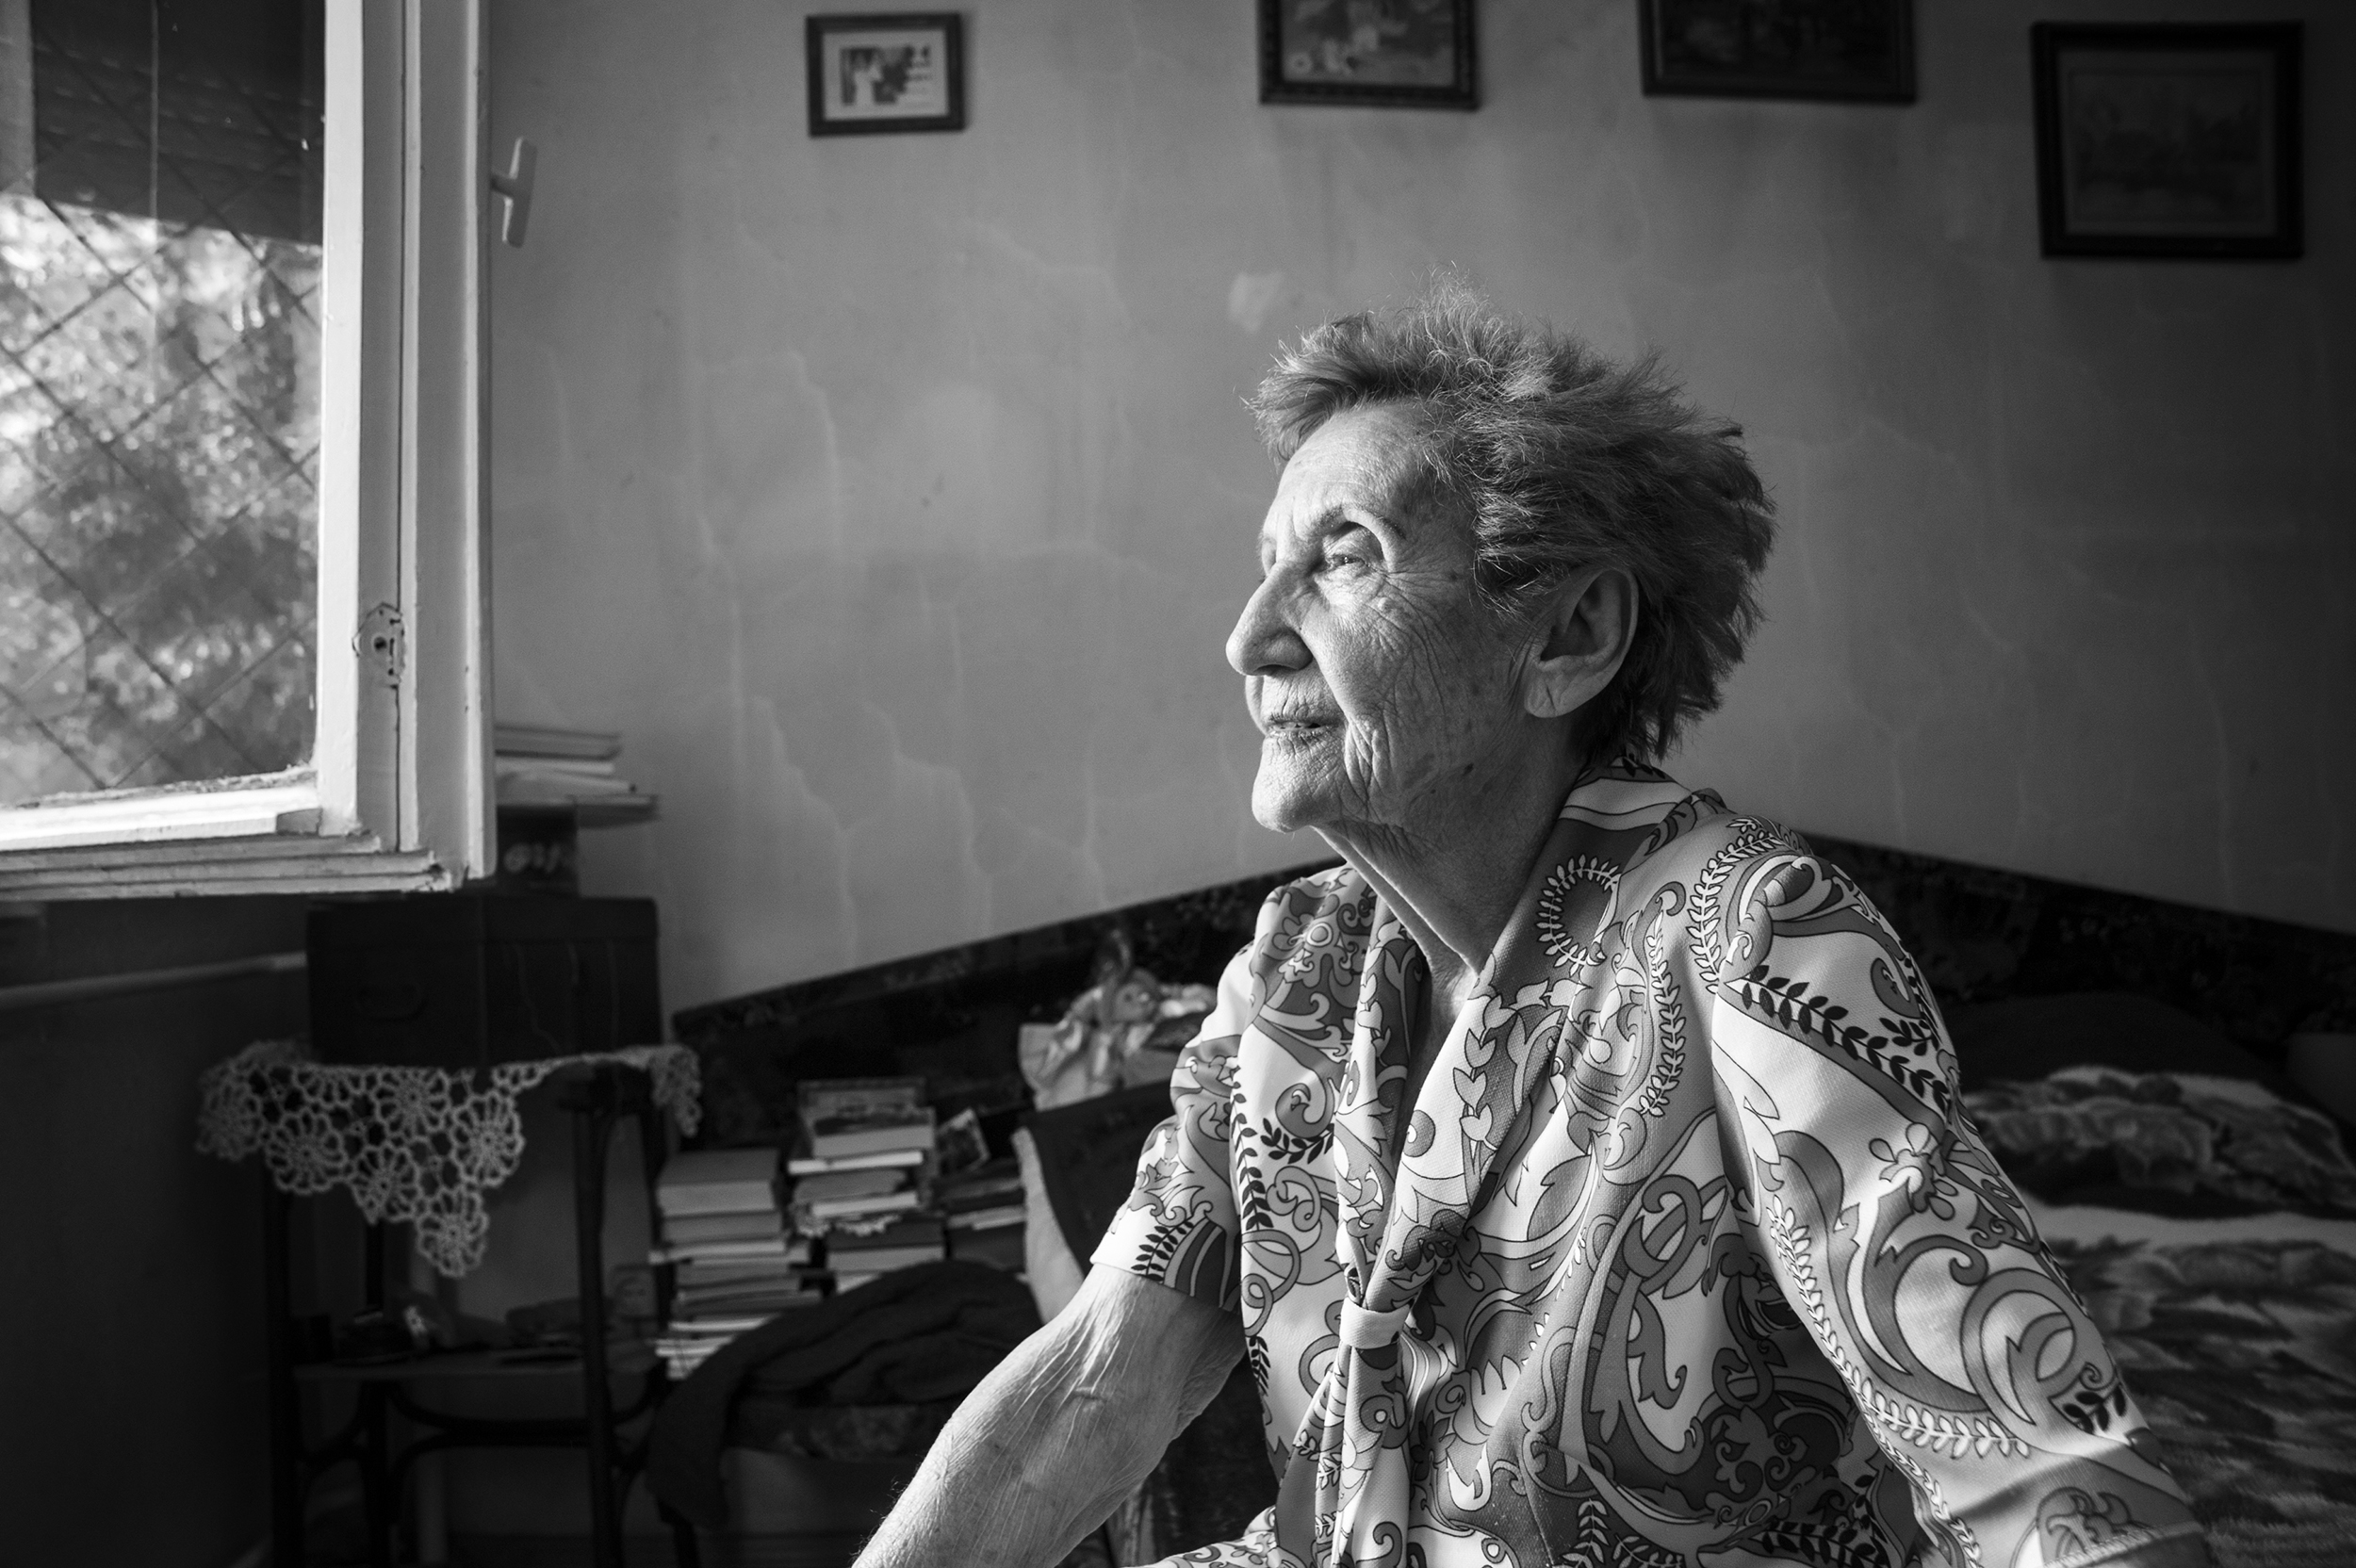 """Gabriella (Hamlet) Bóné, a survivor of Auschwitz Birkenau, sits on her bed and looks out the window of her small ground-level apartment in Oradea, Romania on August 23, 2013. Bóné vividly remembers the deportations when she was just fifteen years old. """"The Hungarian police crammed us into wooden train cars that had barbed wire covering the small windows. We traveled without food and with very little water for nearly a week without knowing what fate lay before us. We arrived at Auschwitz having barely slept only to be inspected by Dr. Mengele himself and the other SS officers."""""""